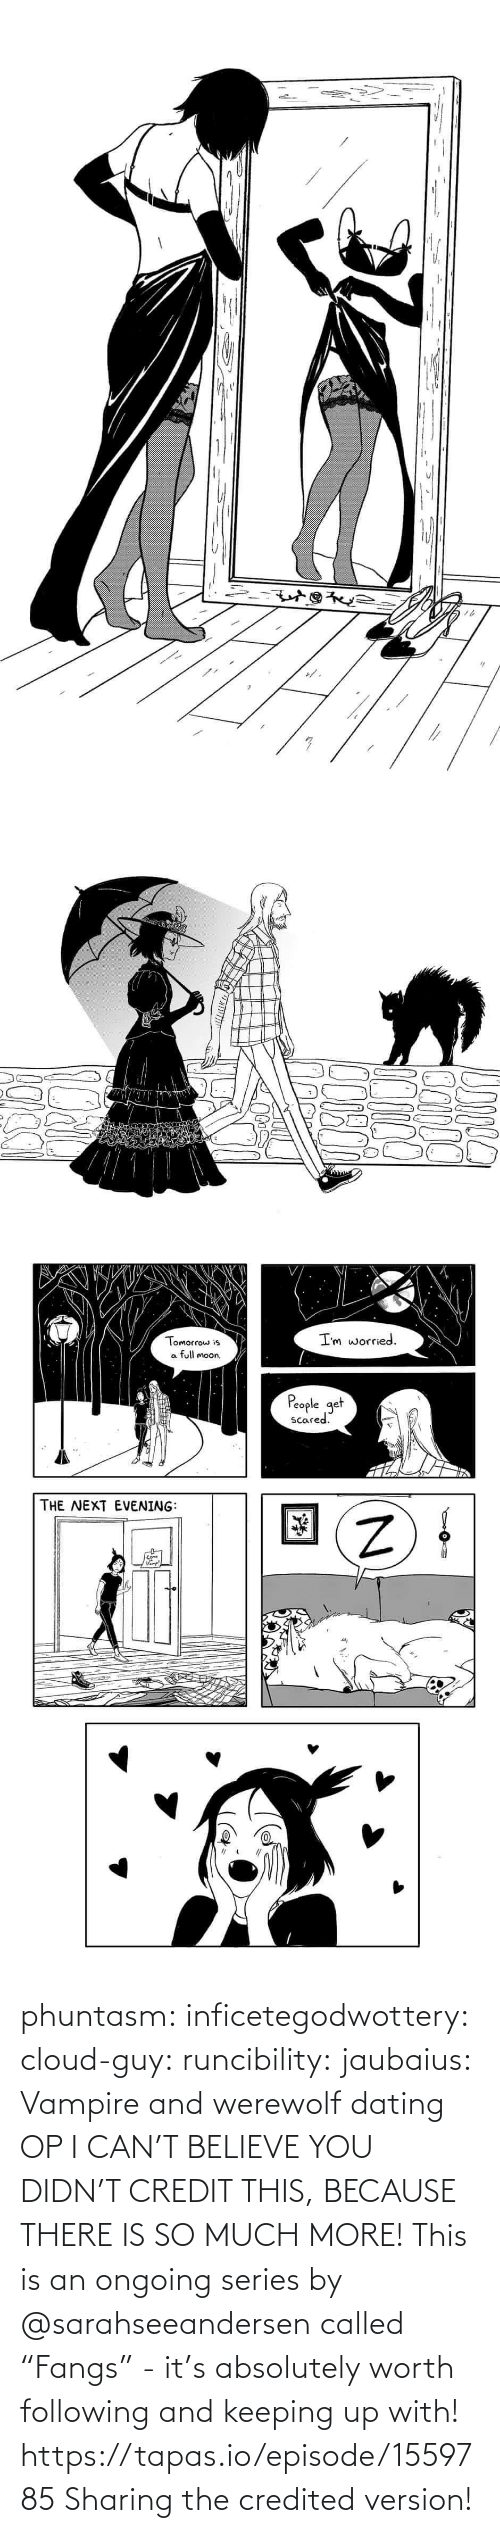 "much: phuntasm: inficetegodwottery:  cloud-guy:   runcibility:  jaubaius:   Vampire and werewolf dating   OP I CAN'T BELIEVE YOU DIDN'T CREDIT THIS, BECAUSE THERE IS SO MUCH MORE! This is an ongoing series by @sarahseeandersen called ""Fangs"" - it's absolutely worth following and keeping up with! https://tapas.io/episode/1559785    Sharing the credited version!"